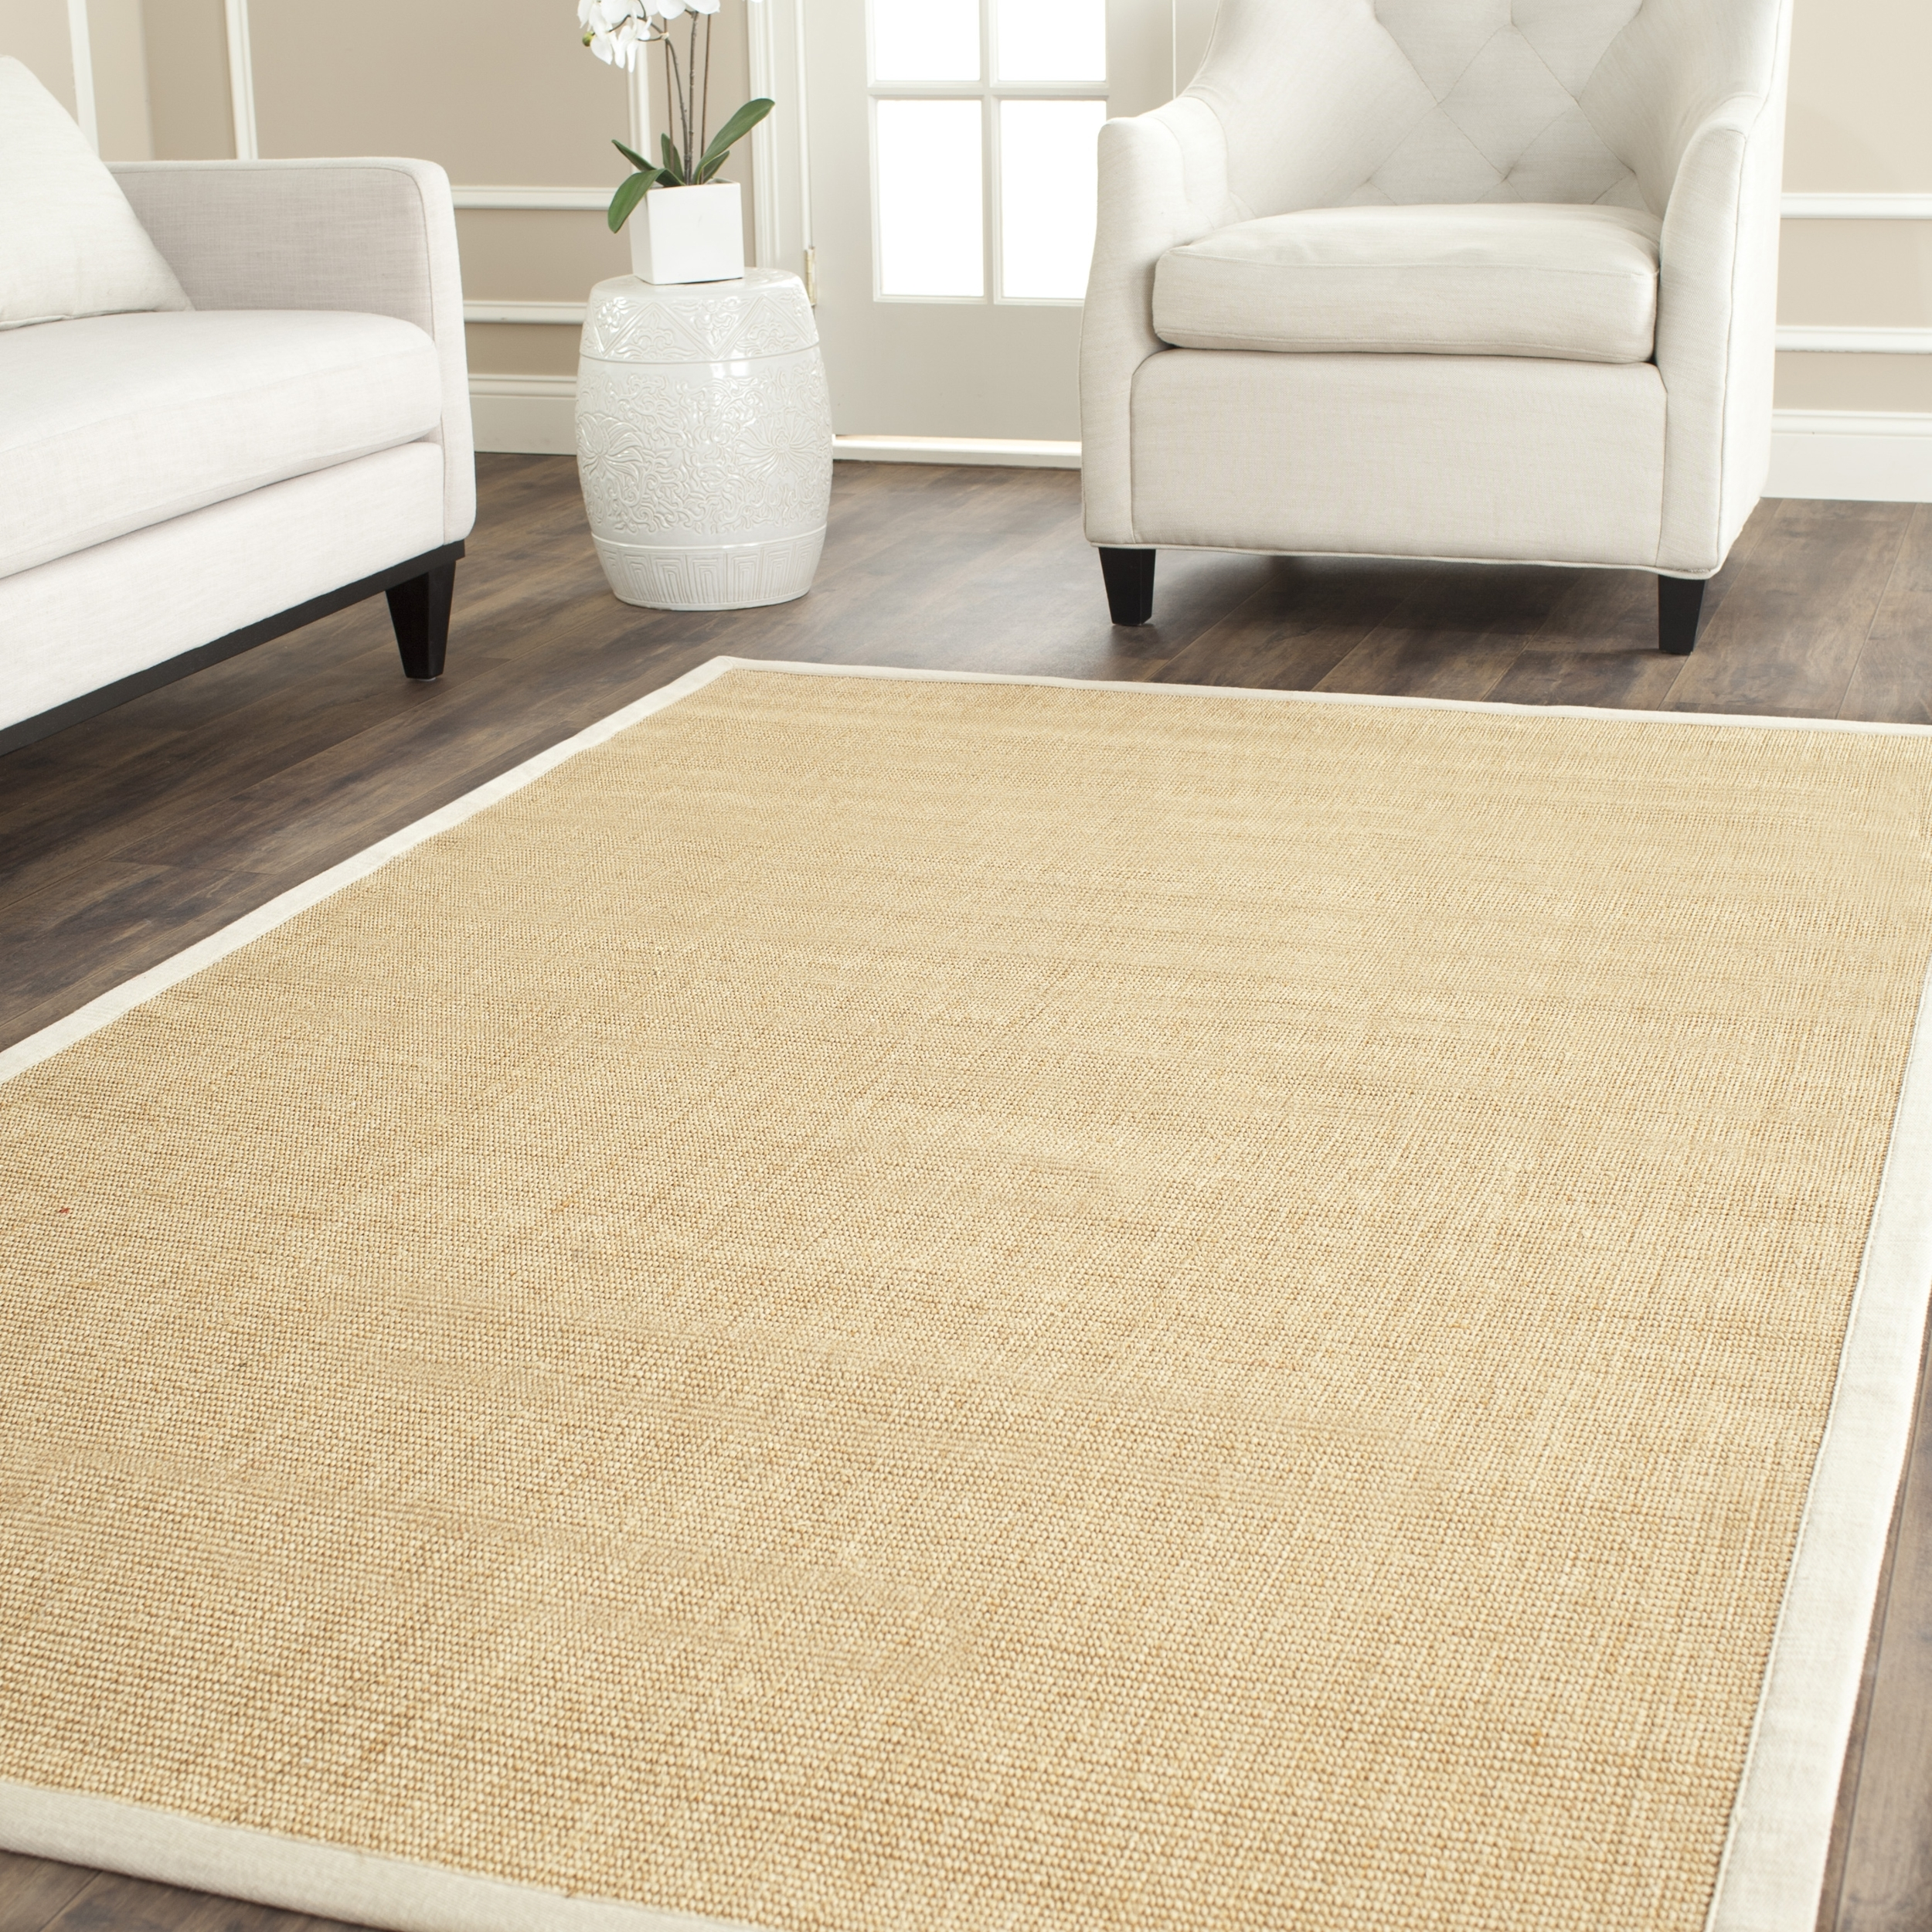 Customized Rugs In Dubai Across Uae Call 0566 00 9626 Throughout Customized Rugs (View 9 of 15)